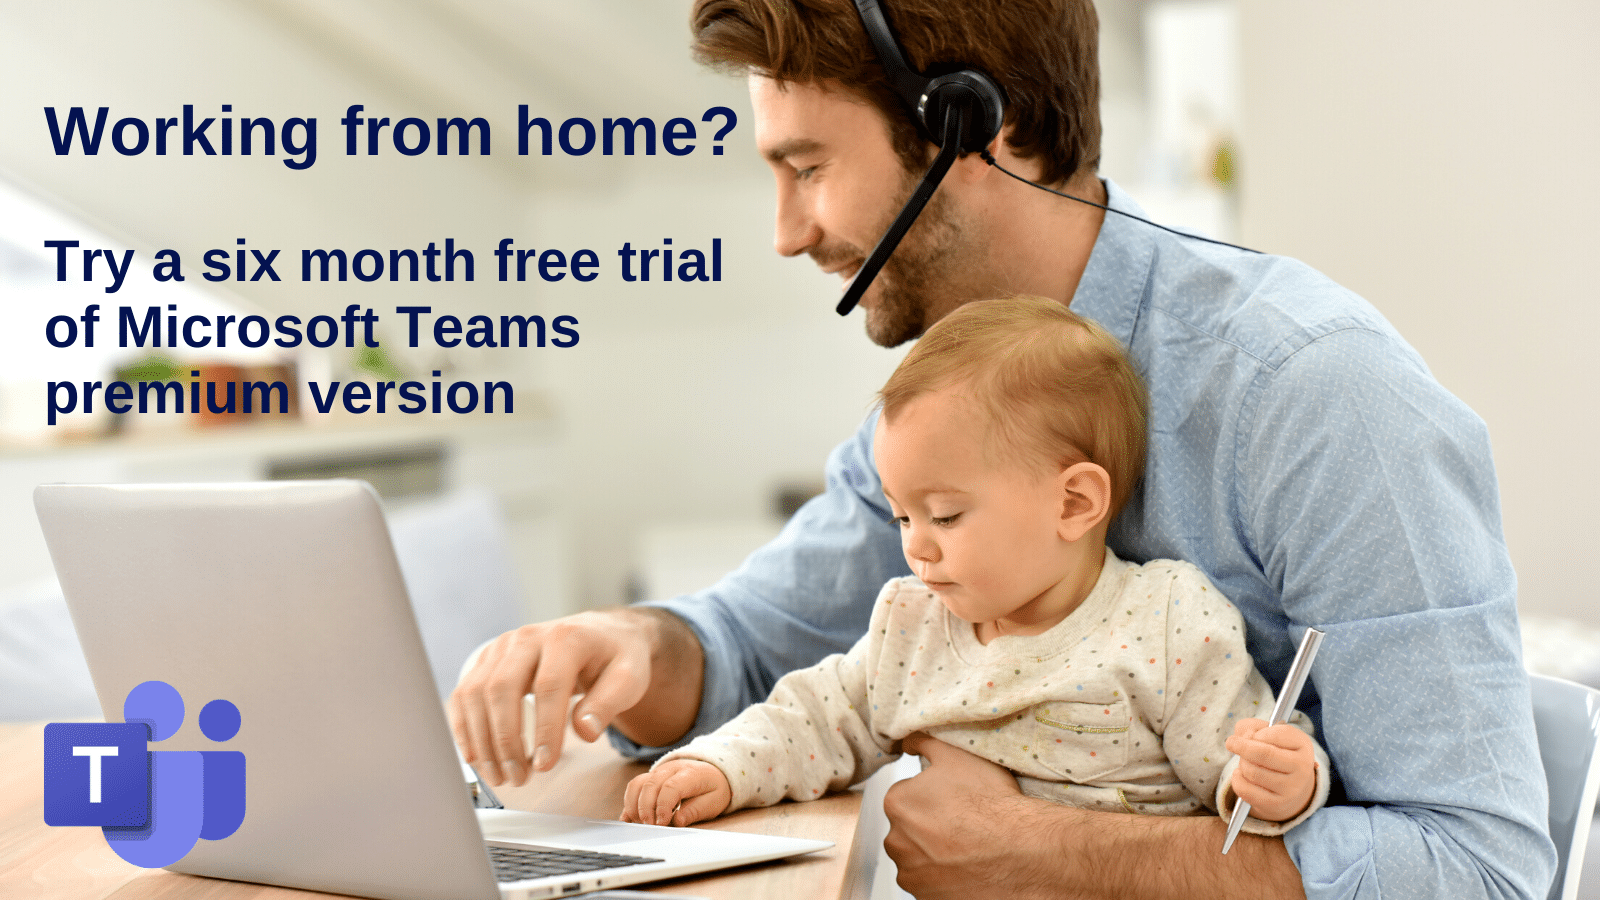 Working from home? Try a six month free trial of Microsoft Teams premium version now.